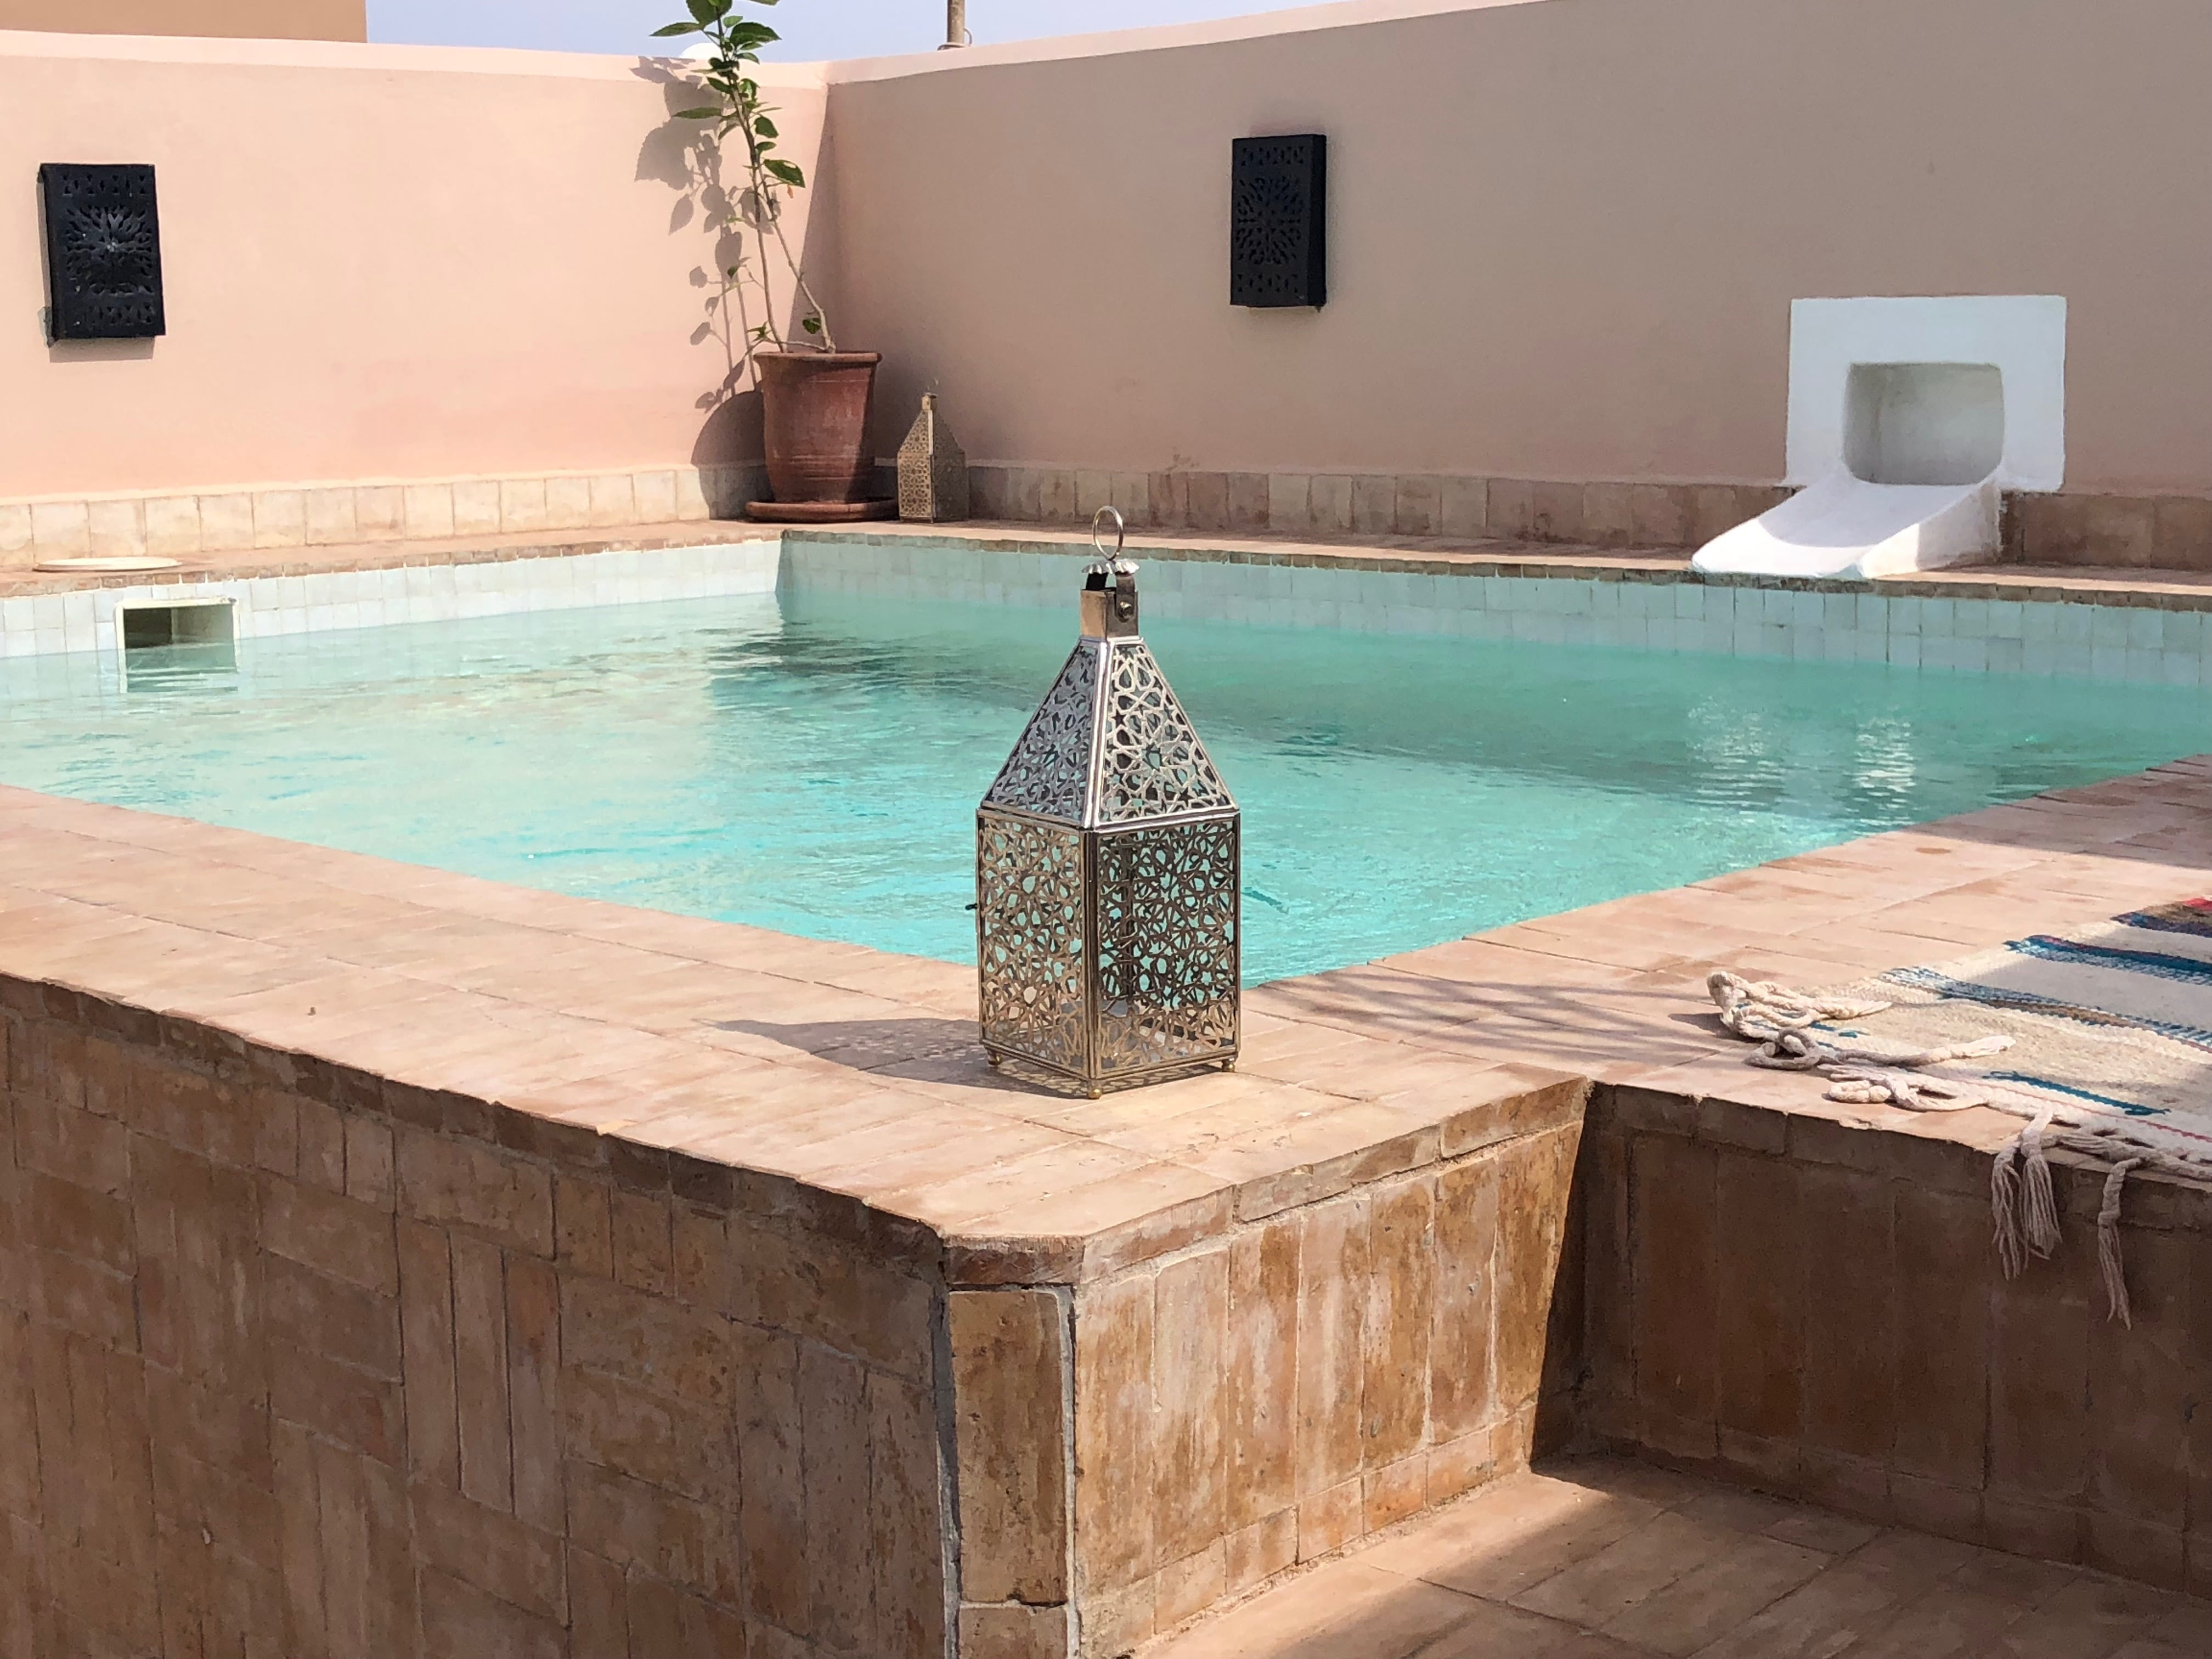 Moroccan Swimming Pool Terrace with Decorative silver lanterns, Traditional Rug and Large pot plant.